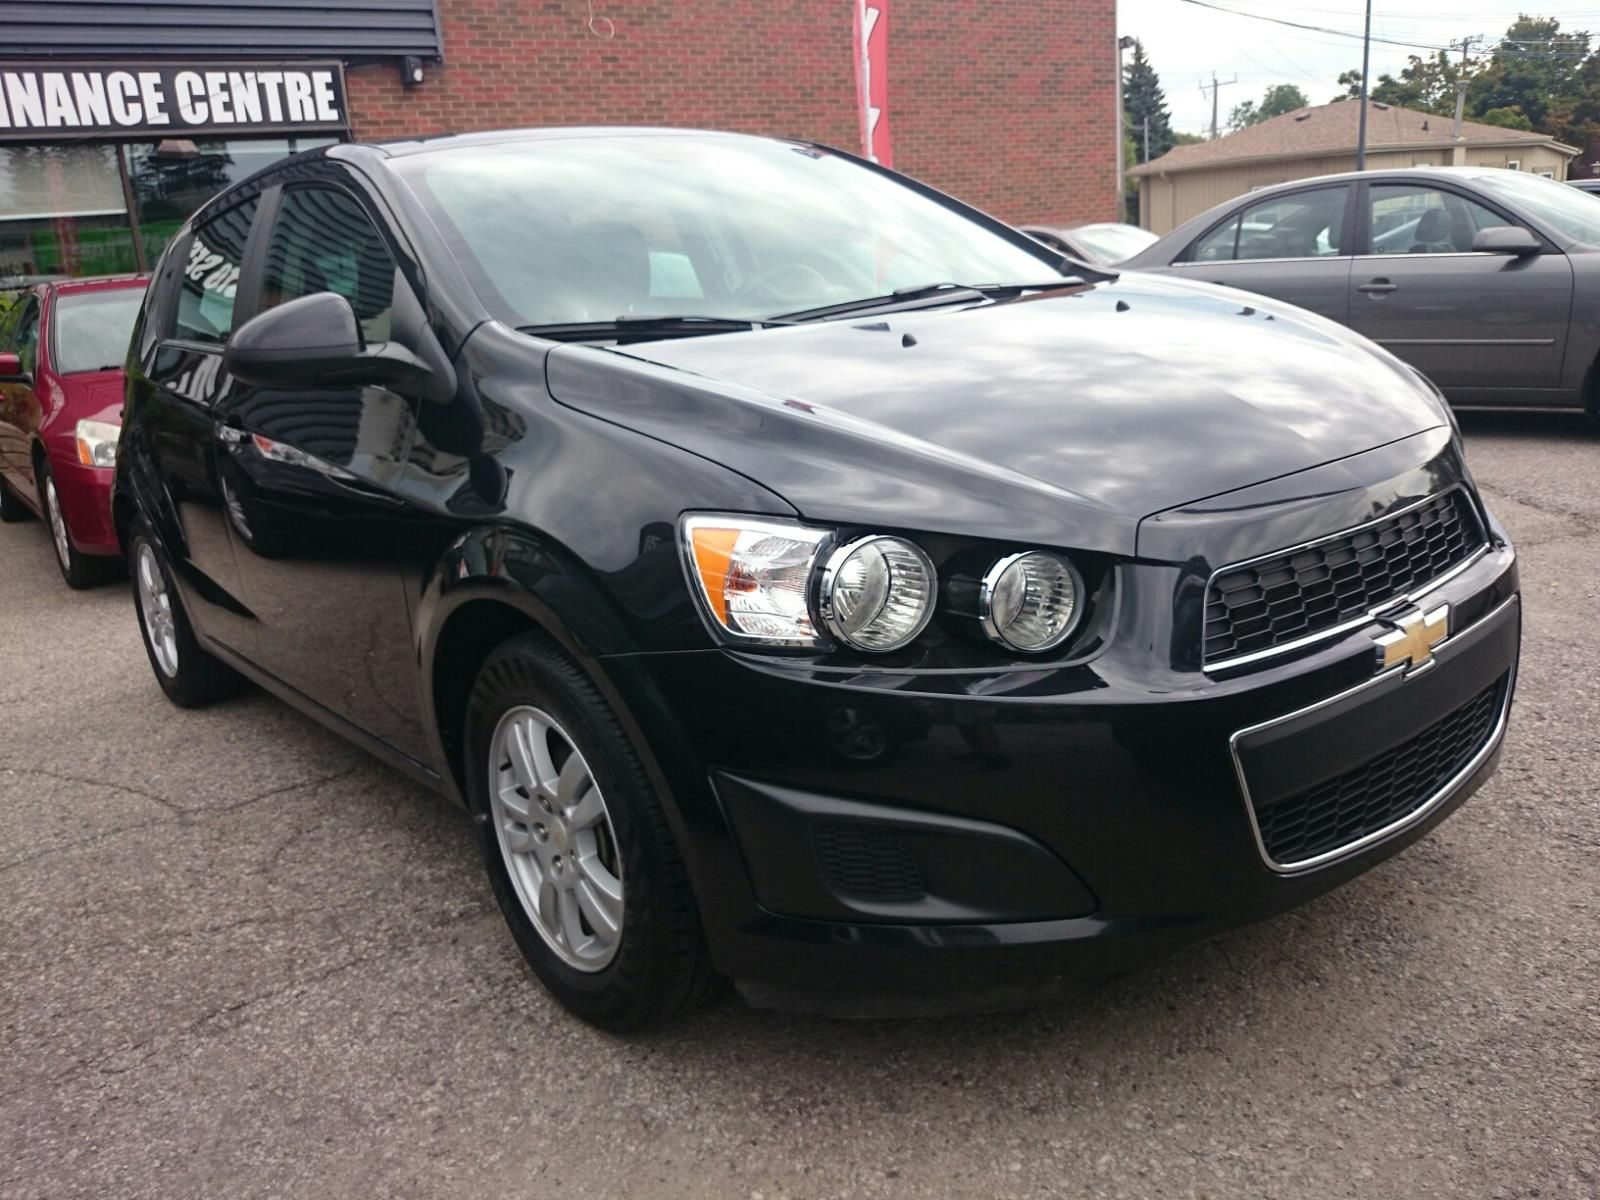 2013 chevrolet sonic lt auto contact for details the loan arranger cambridge